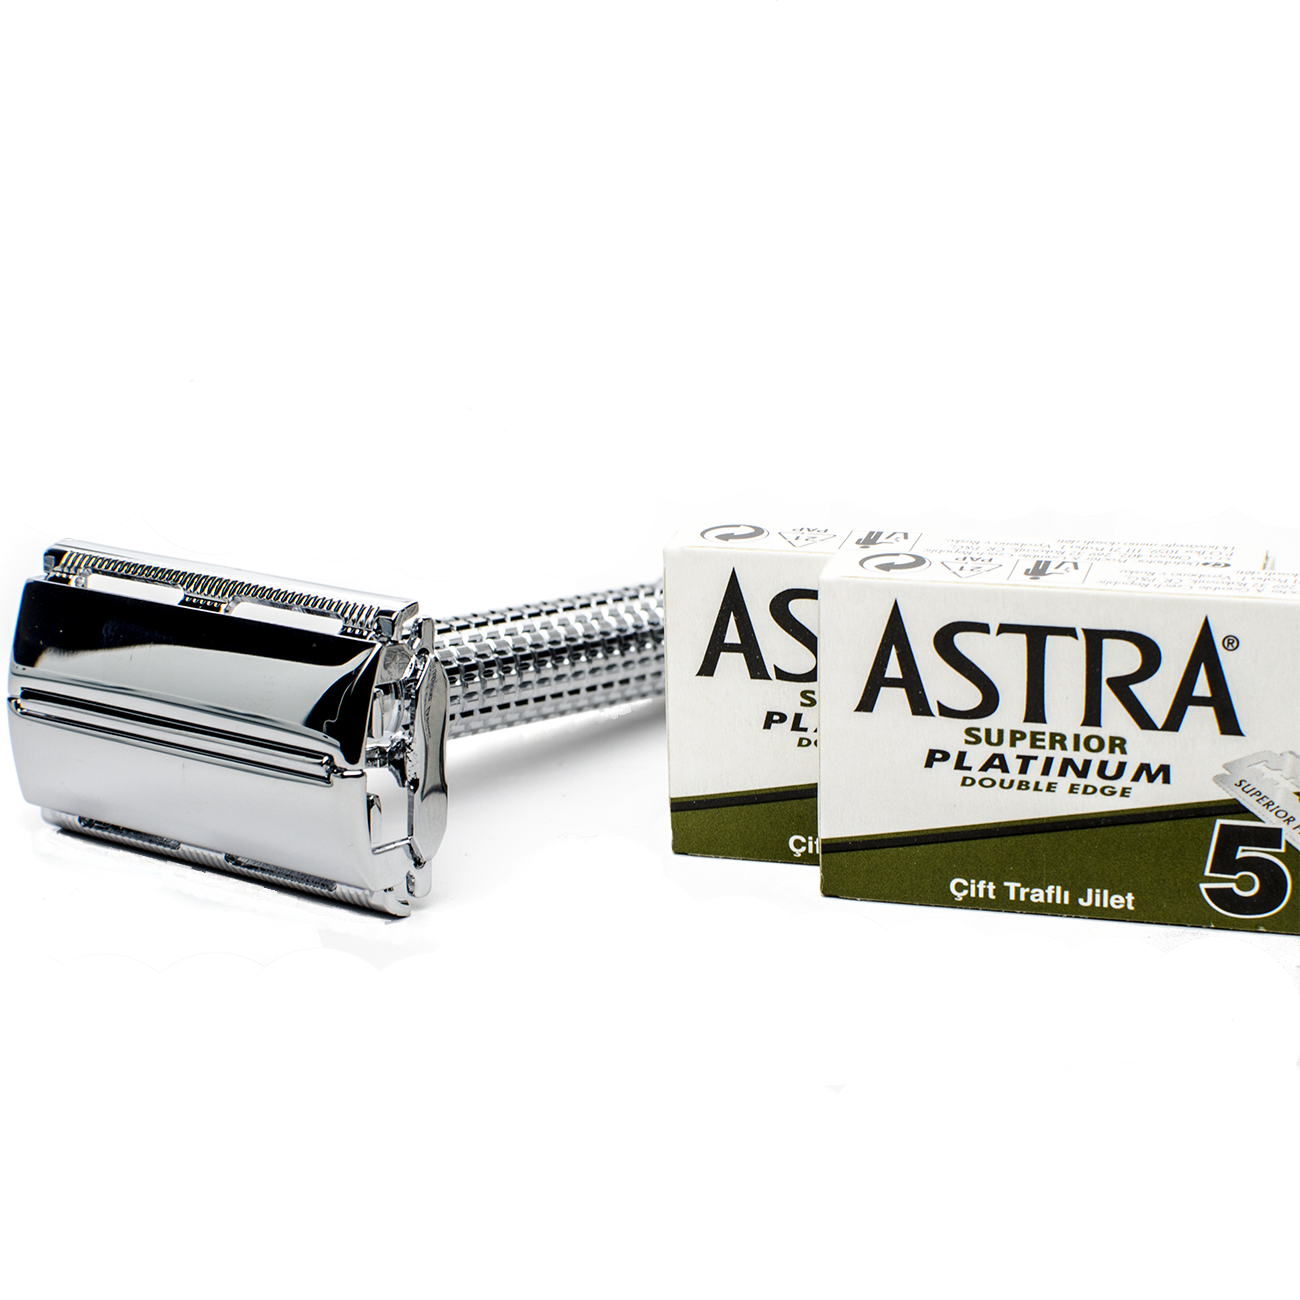 Razor - Double Edge Safety Razor - FREE 10 Astra Blade